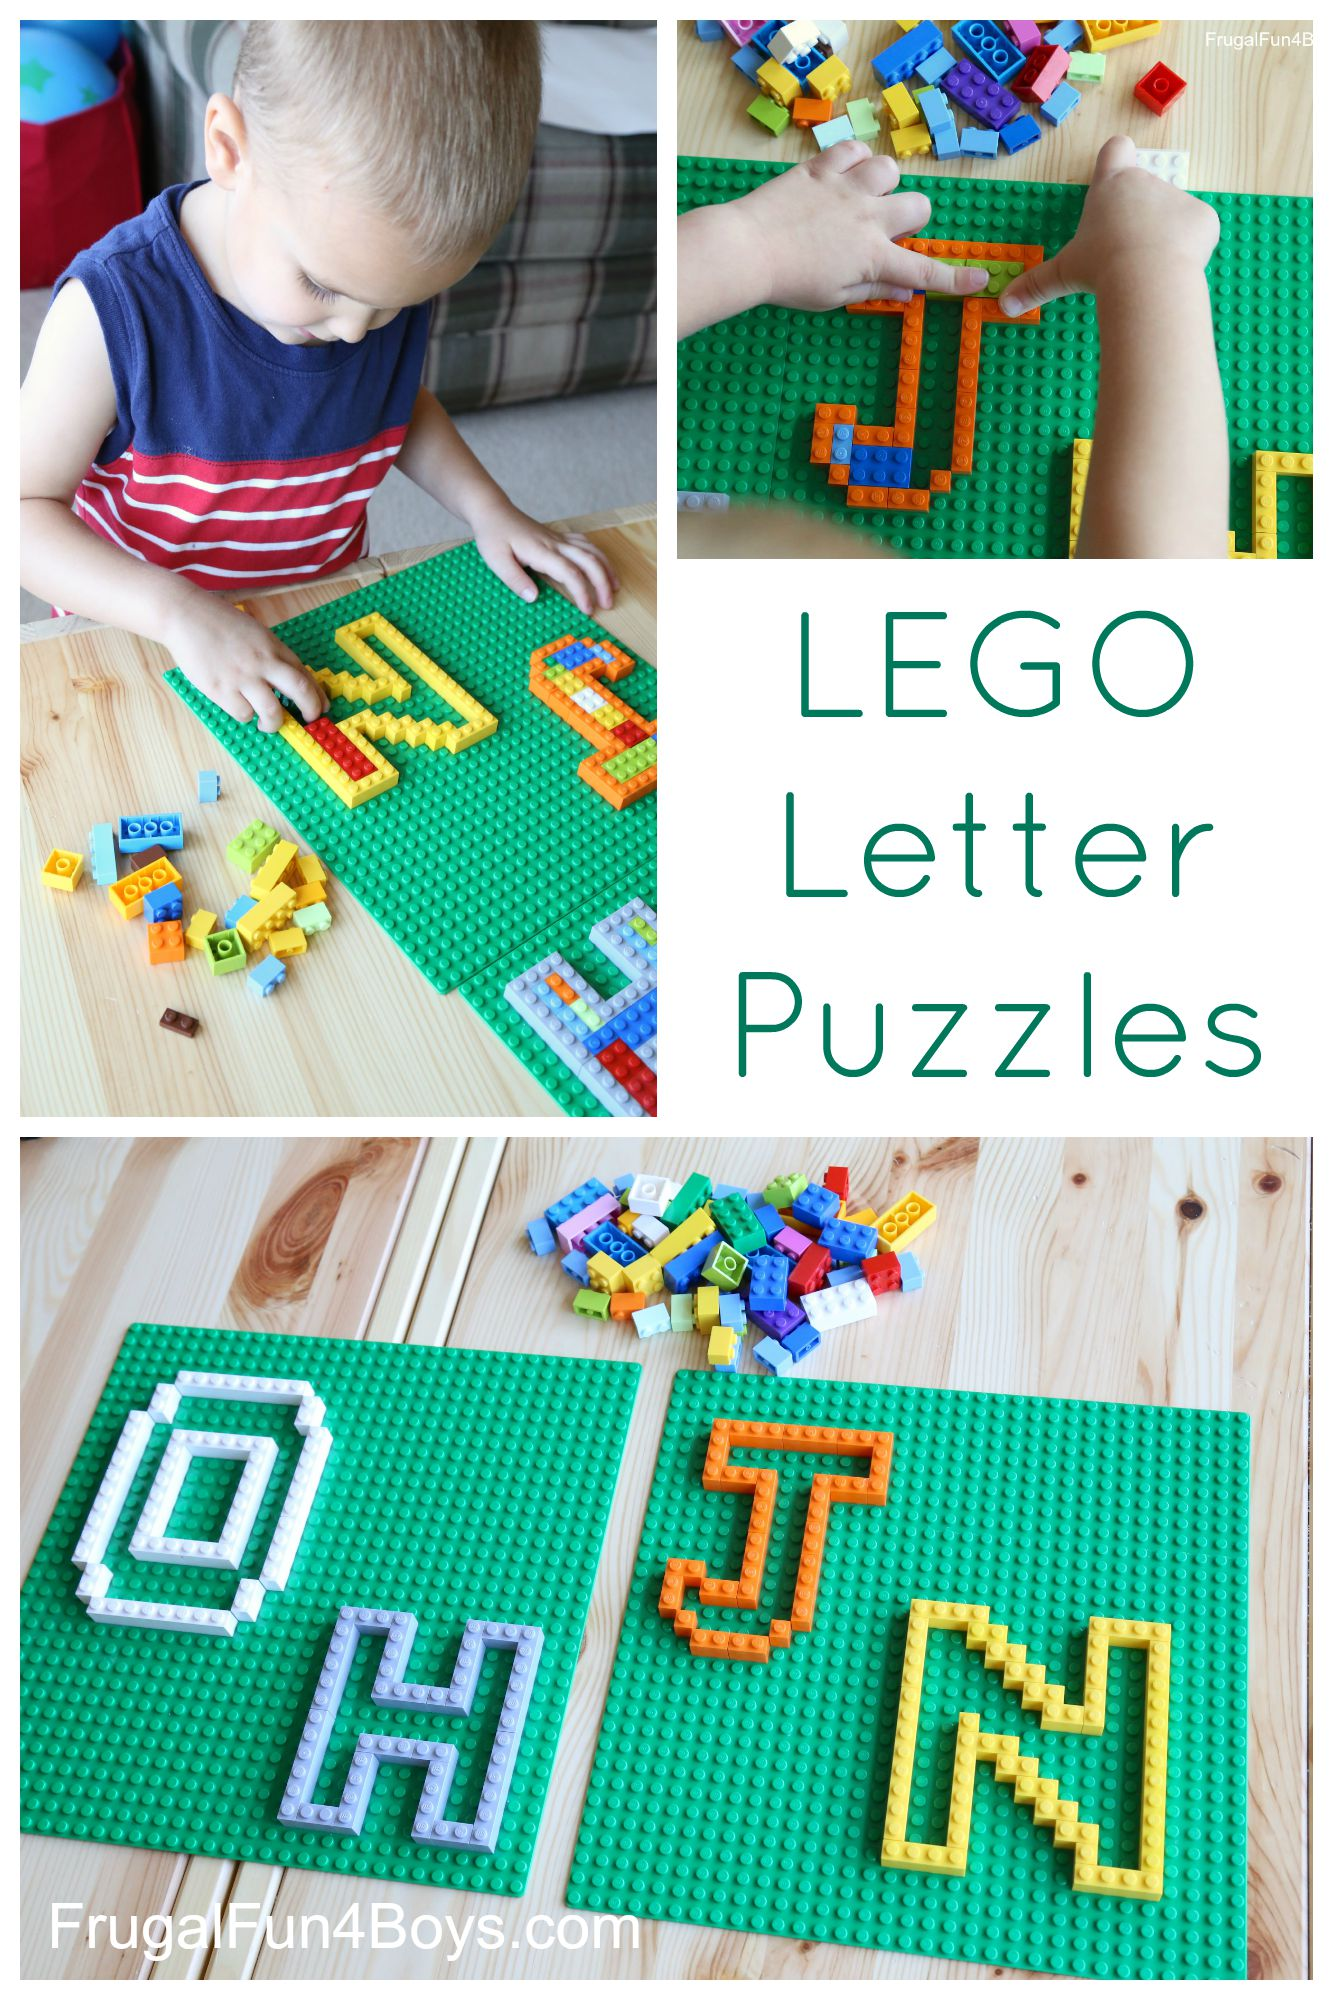 Learning With Lego Letter Puzzles